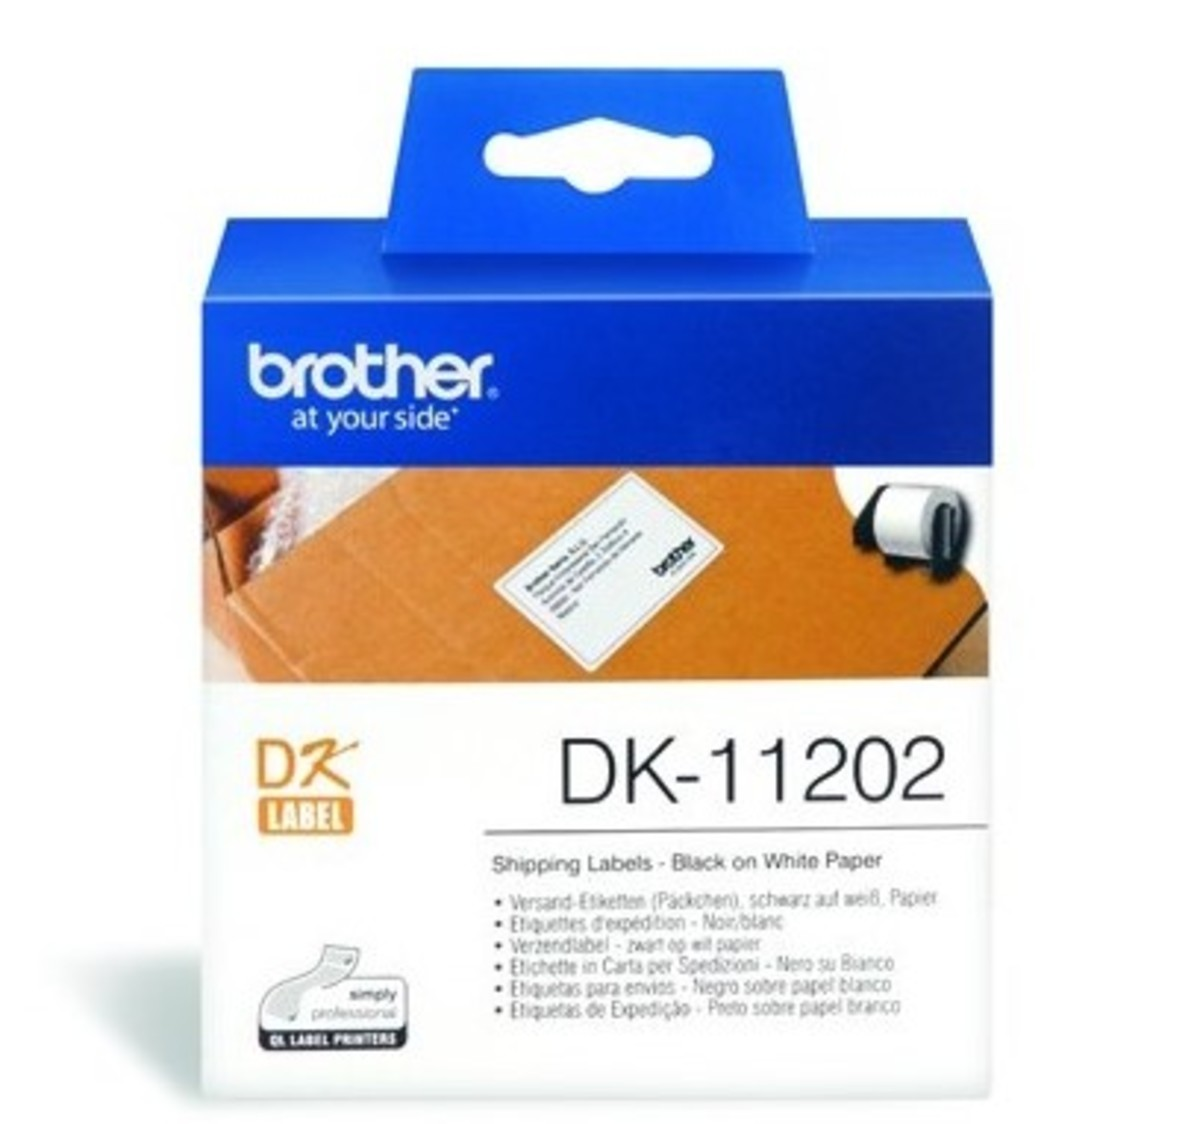 DK 11202 Die-Cut 62mm x 100mm Paper Label 300 Labels per roll BLACK on WHITE (for QL Printers)